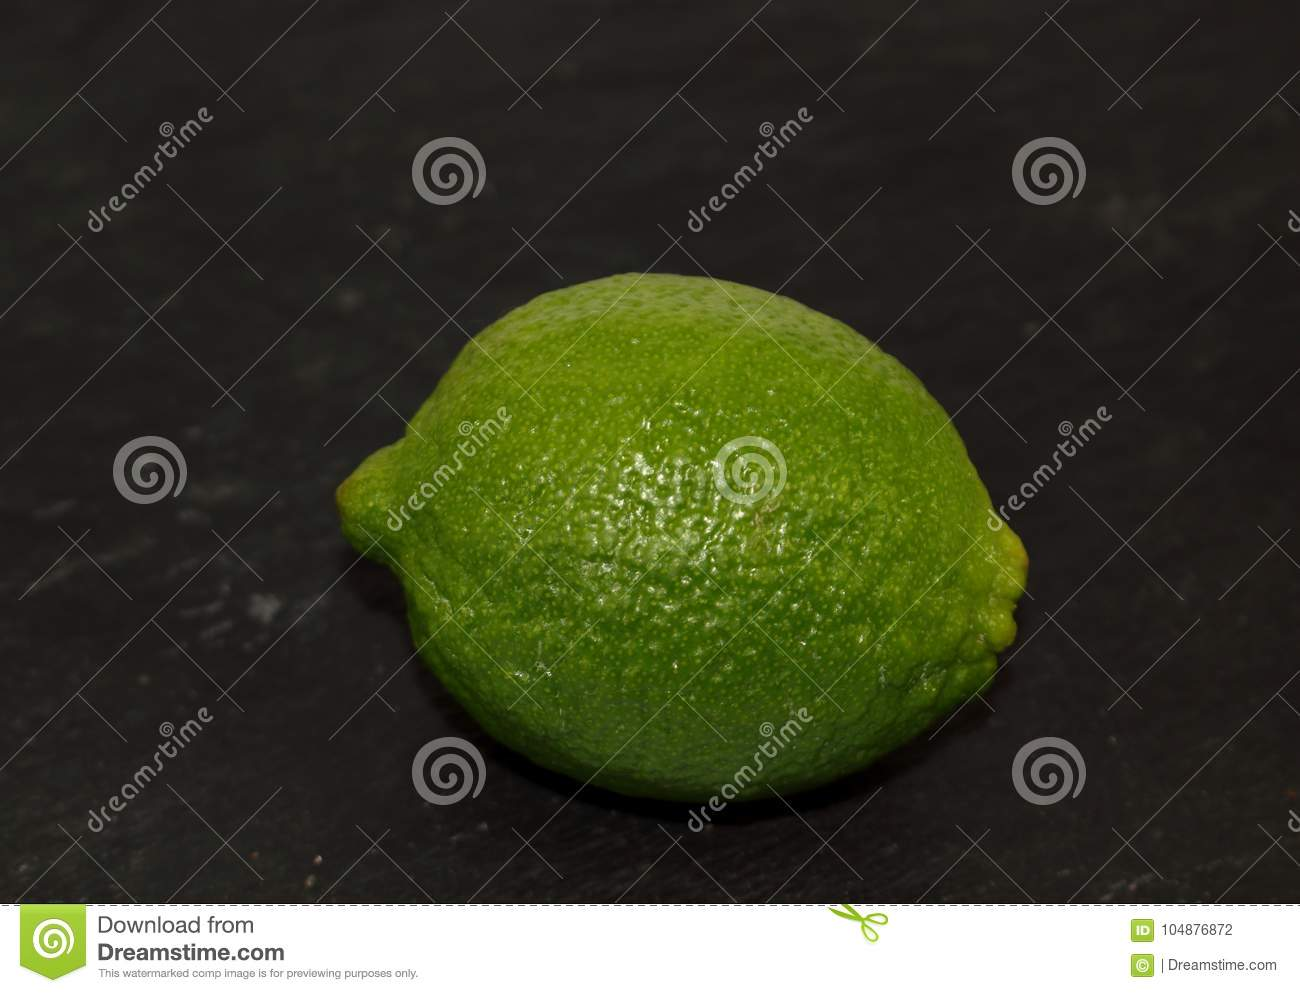 Green fresh exotic citrus fruit lime on a black background